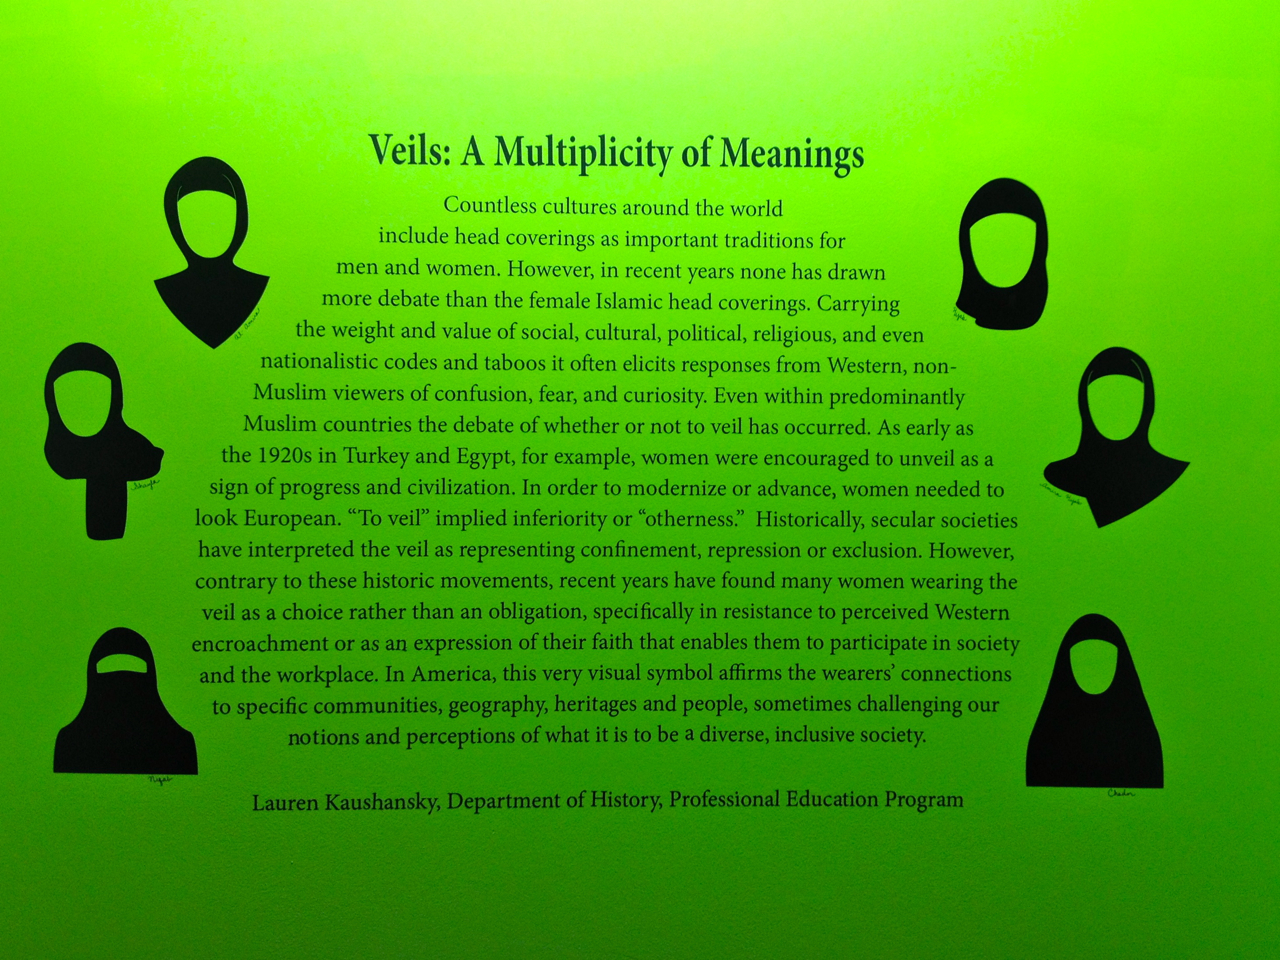 veils: a multiplicity of meanings